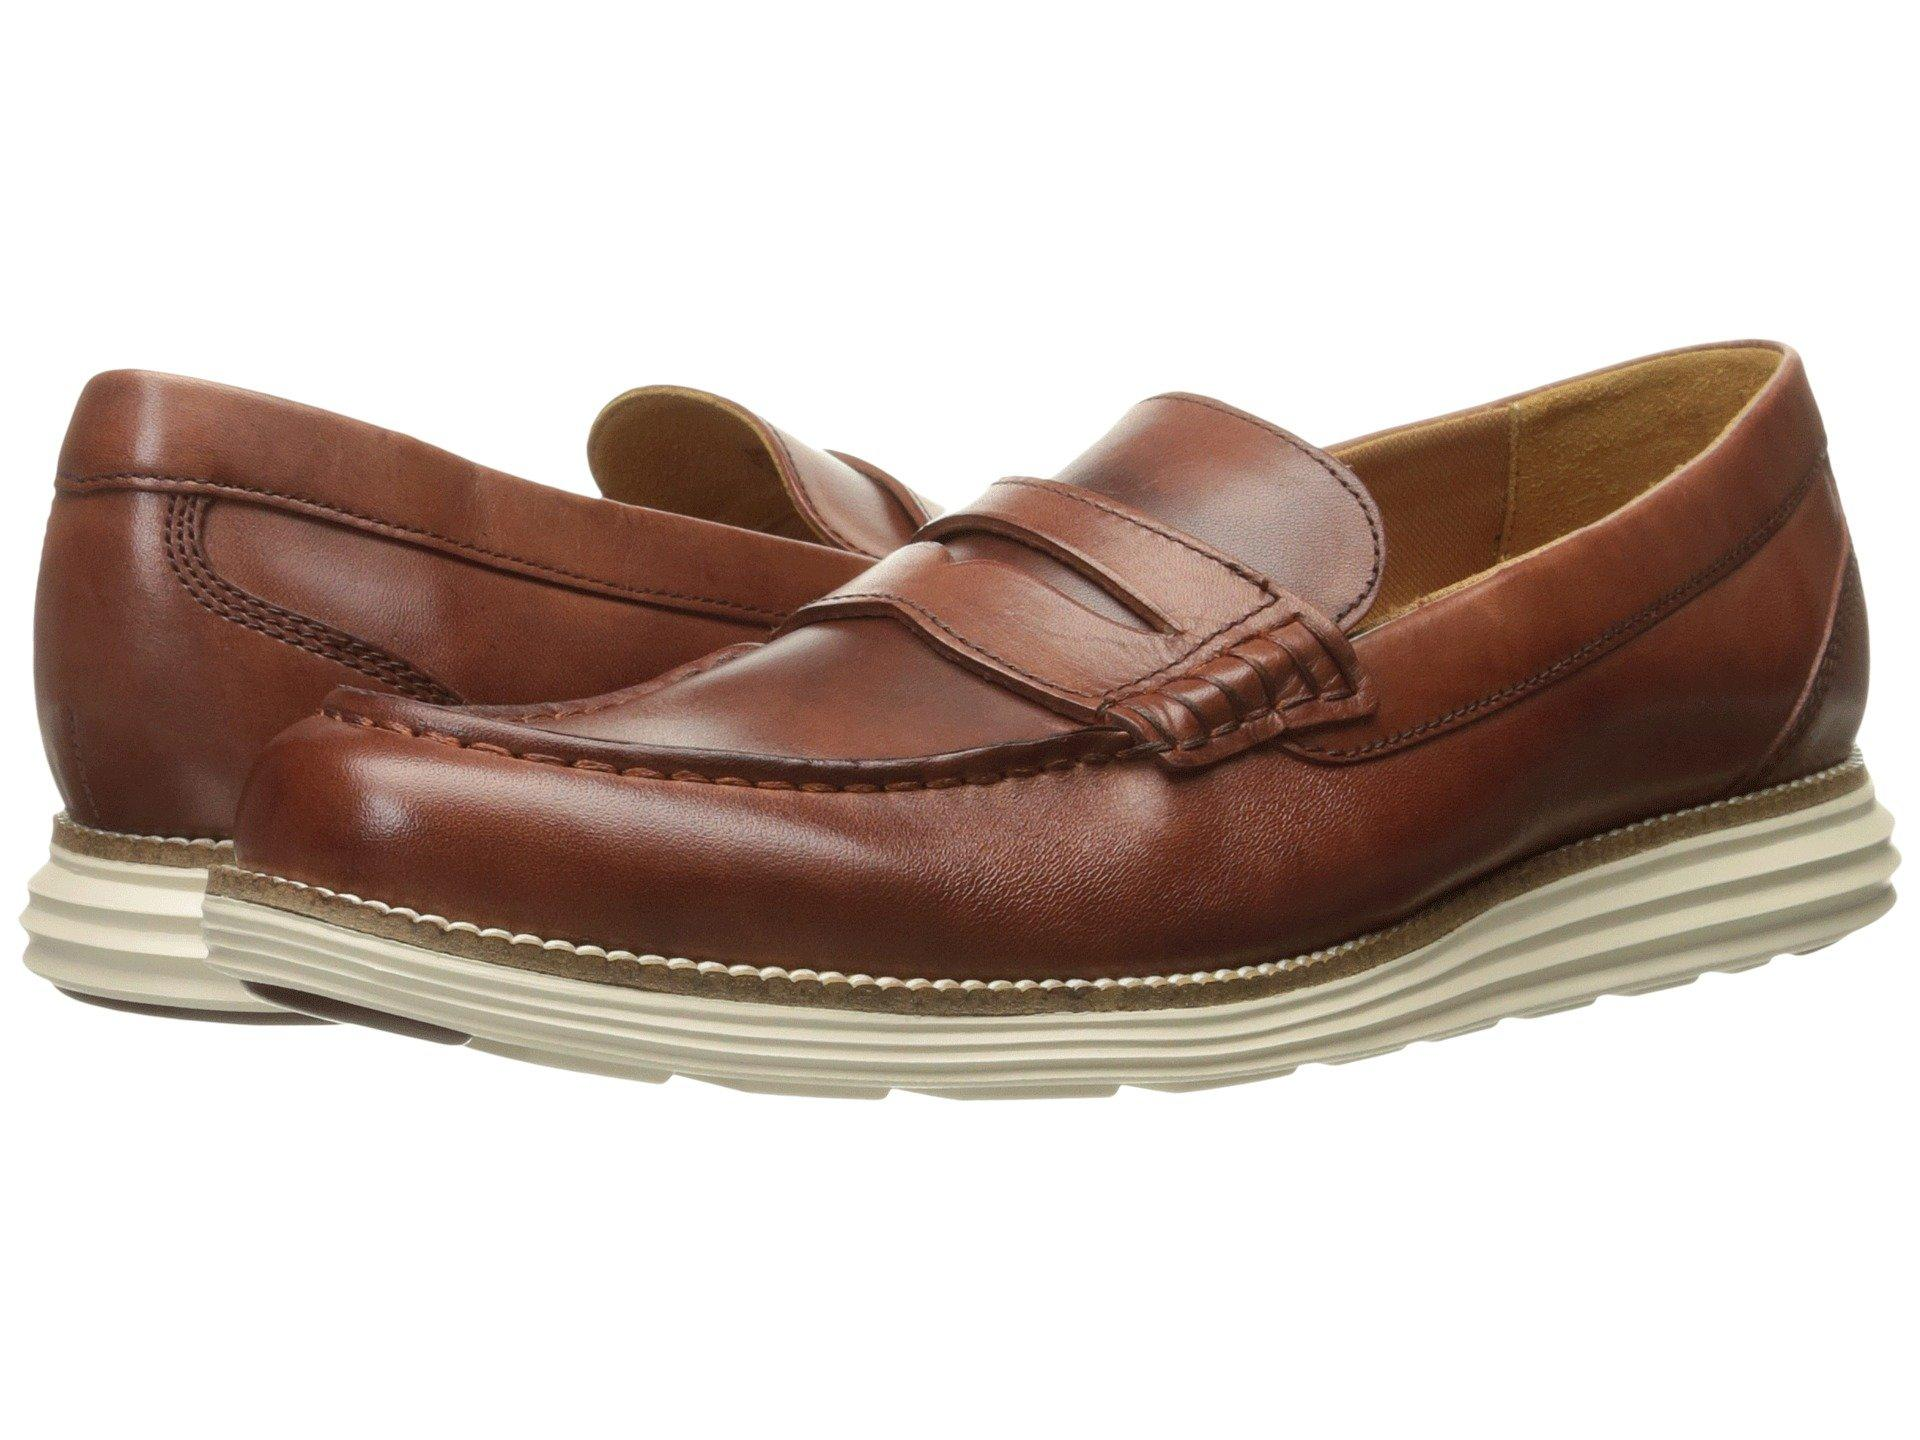 e076439a602 Cole Haan Original Grand Penny Ii In Woodbury Ivory